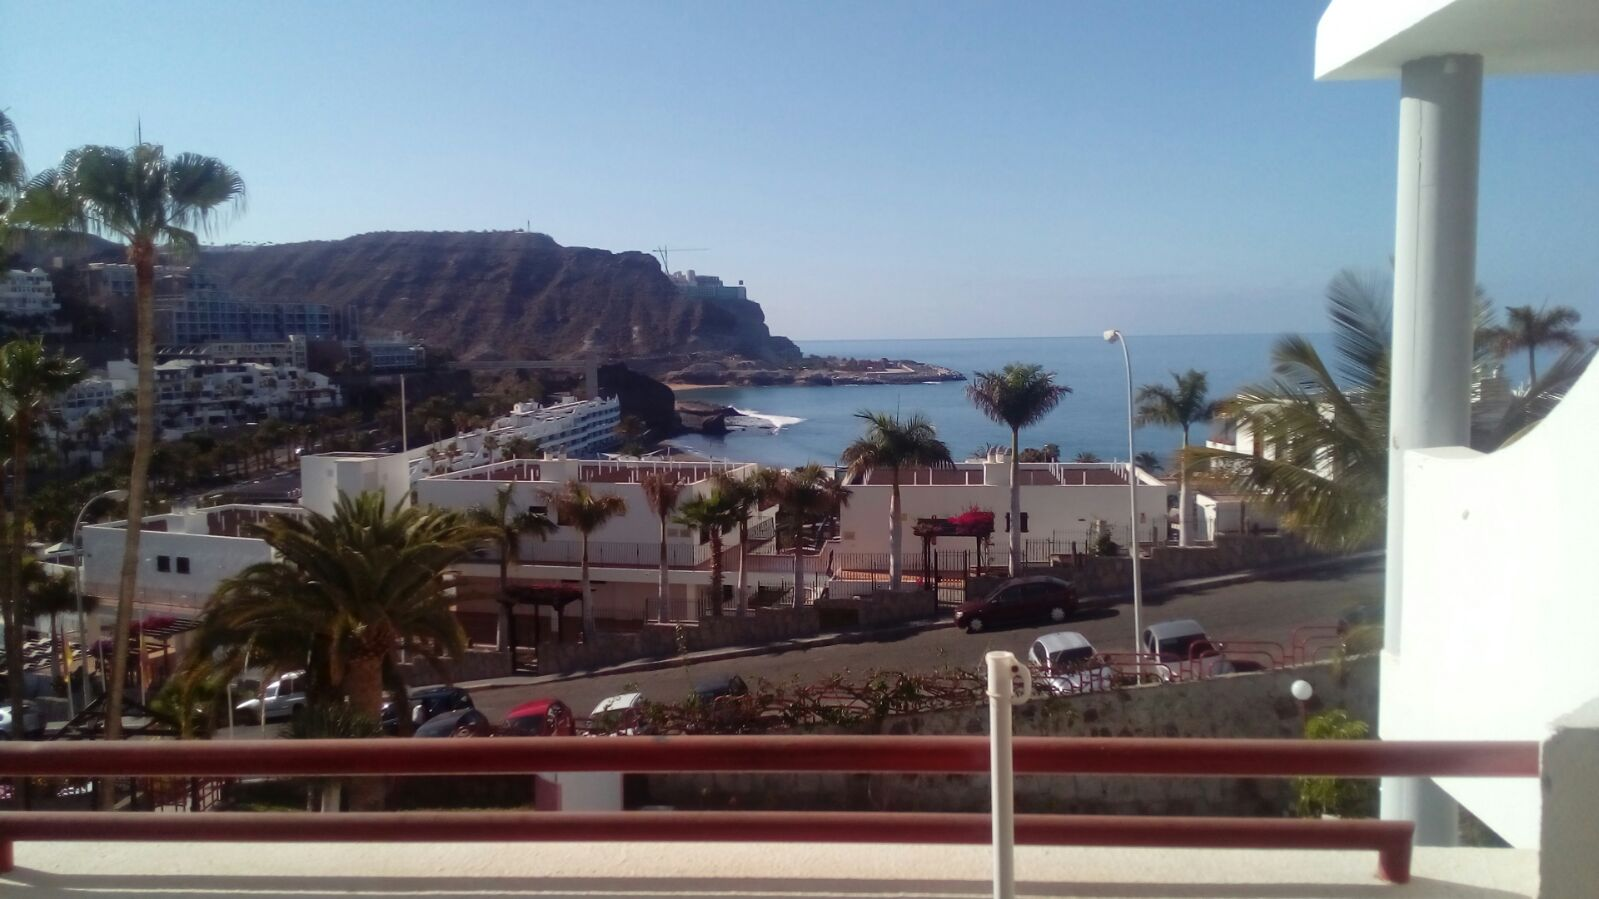 1 Bedroom Apartment in El Cardenal with Fantastic Sea Views – Playa Del Cura